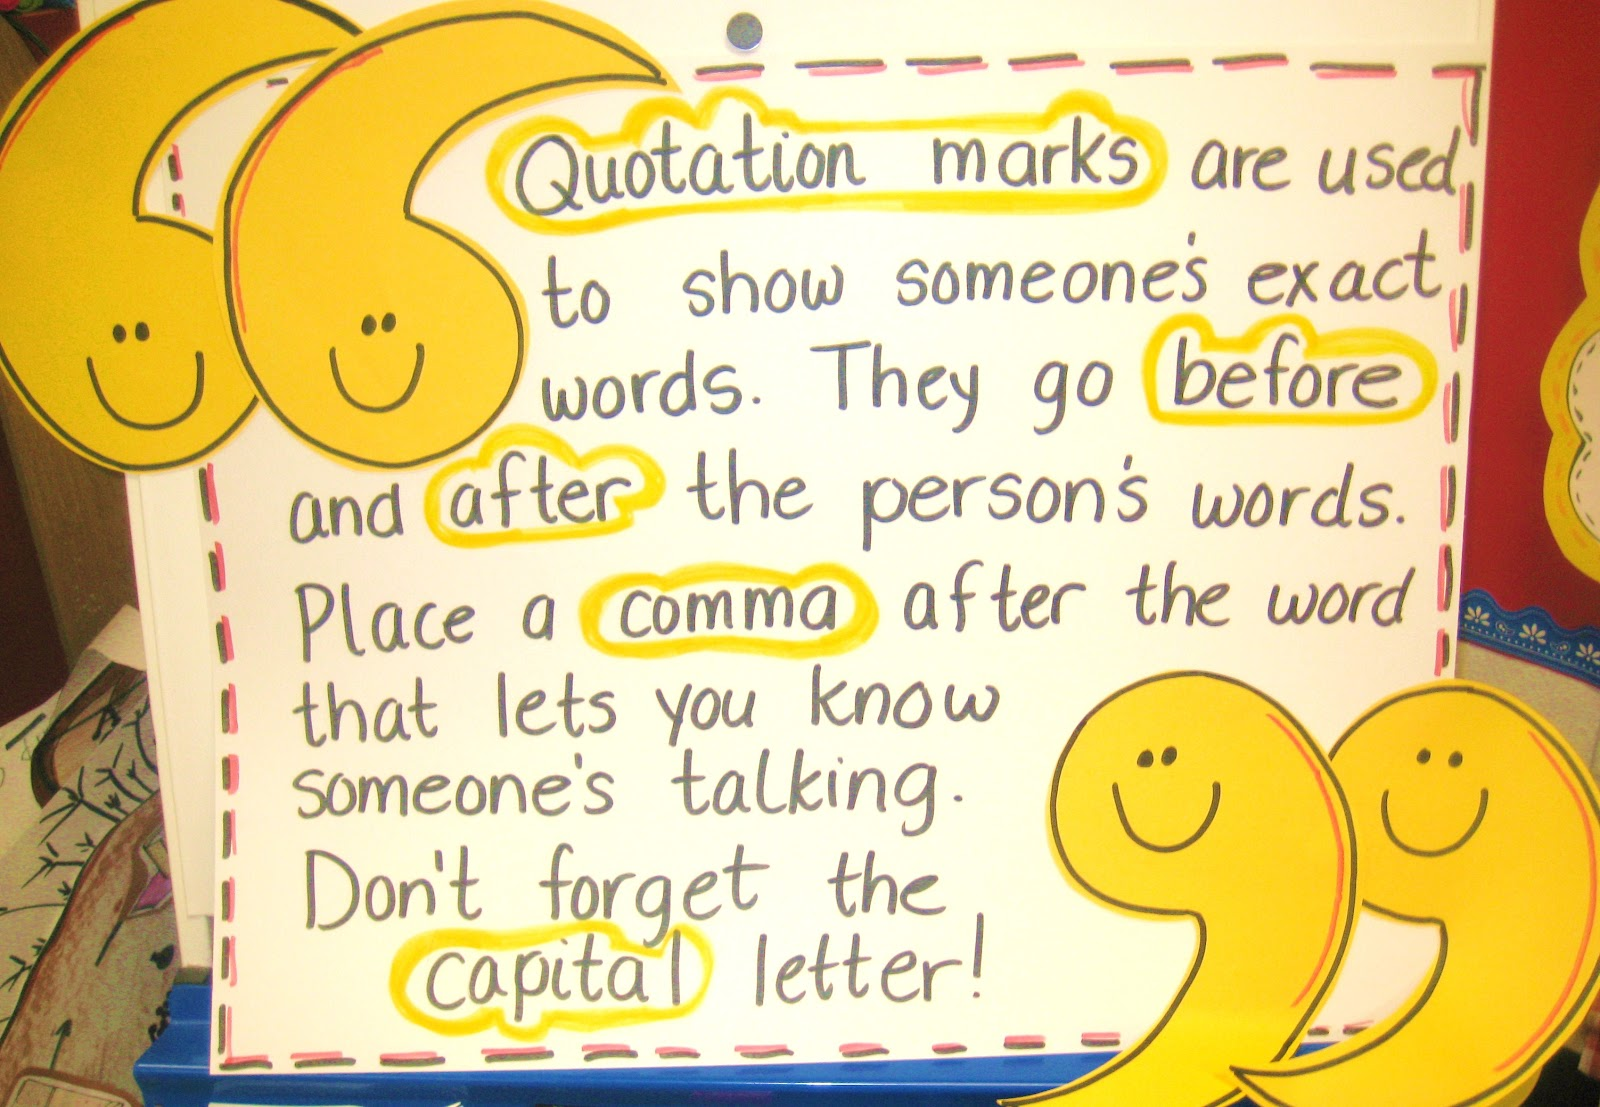 Dialogue Using Quotation Marks